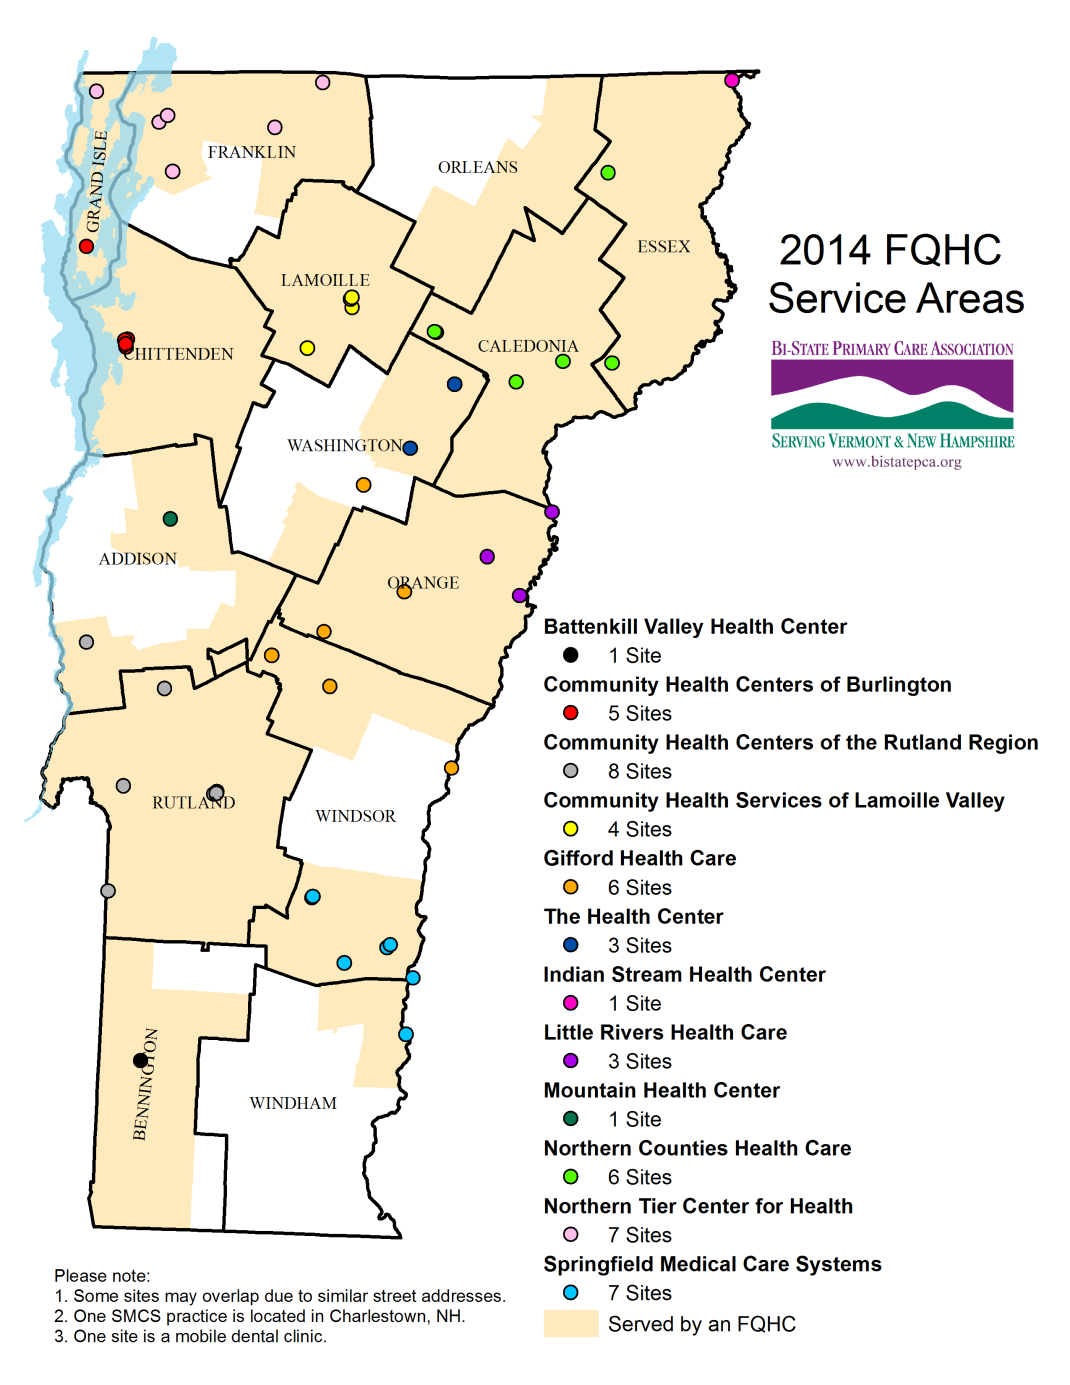 10 Providers FEDERALLY QUALIFIED HEALTH CENTERS (FQHCs) 12 FQHCs (including NH-based Indian Stream s Canaan, VT site) 51 primary care sites in 12 counties Federal grants support sliding fee scale